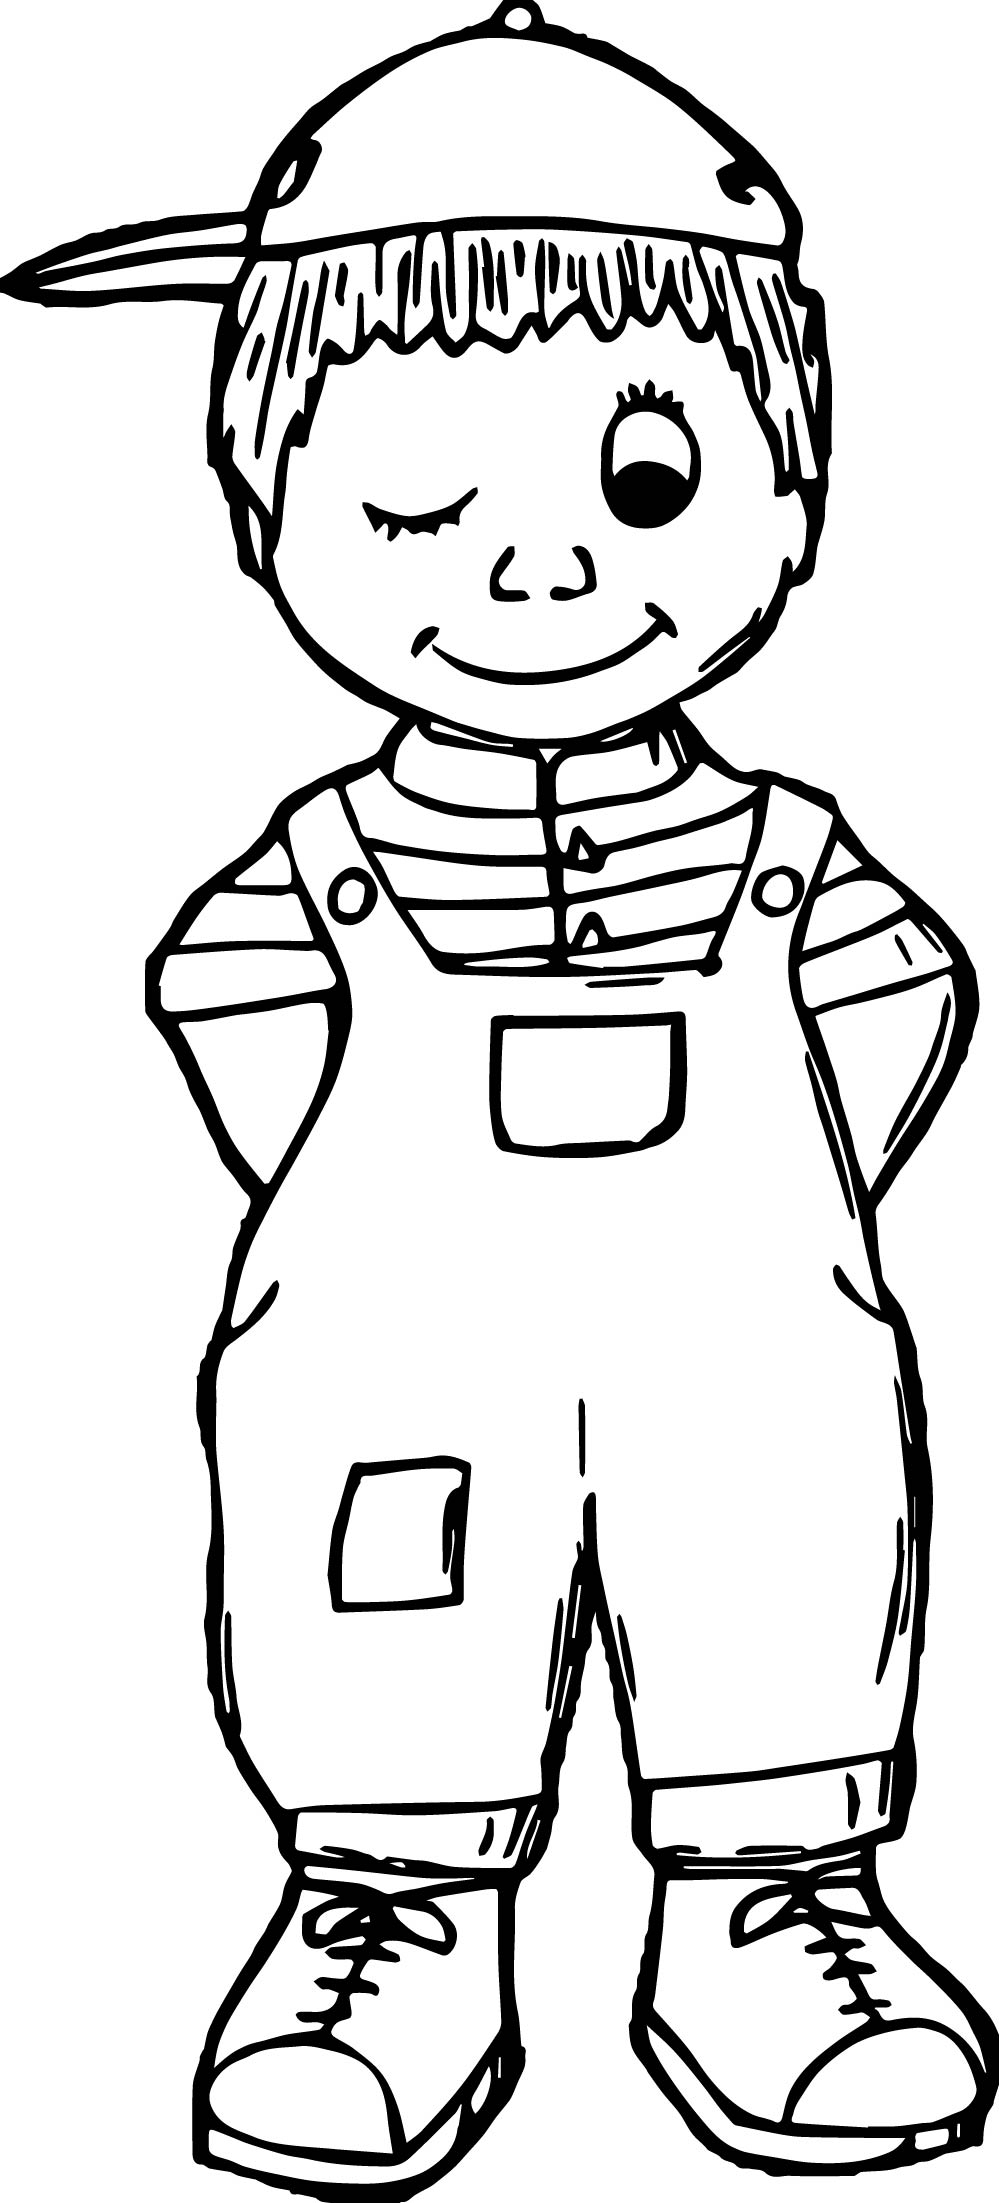 Kids Hat Coloring Page Wecoloringpage Com